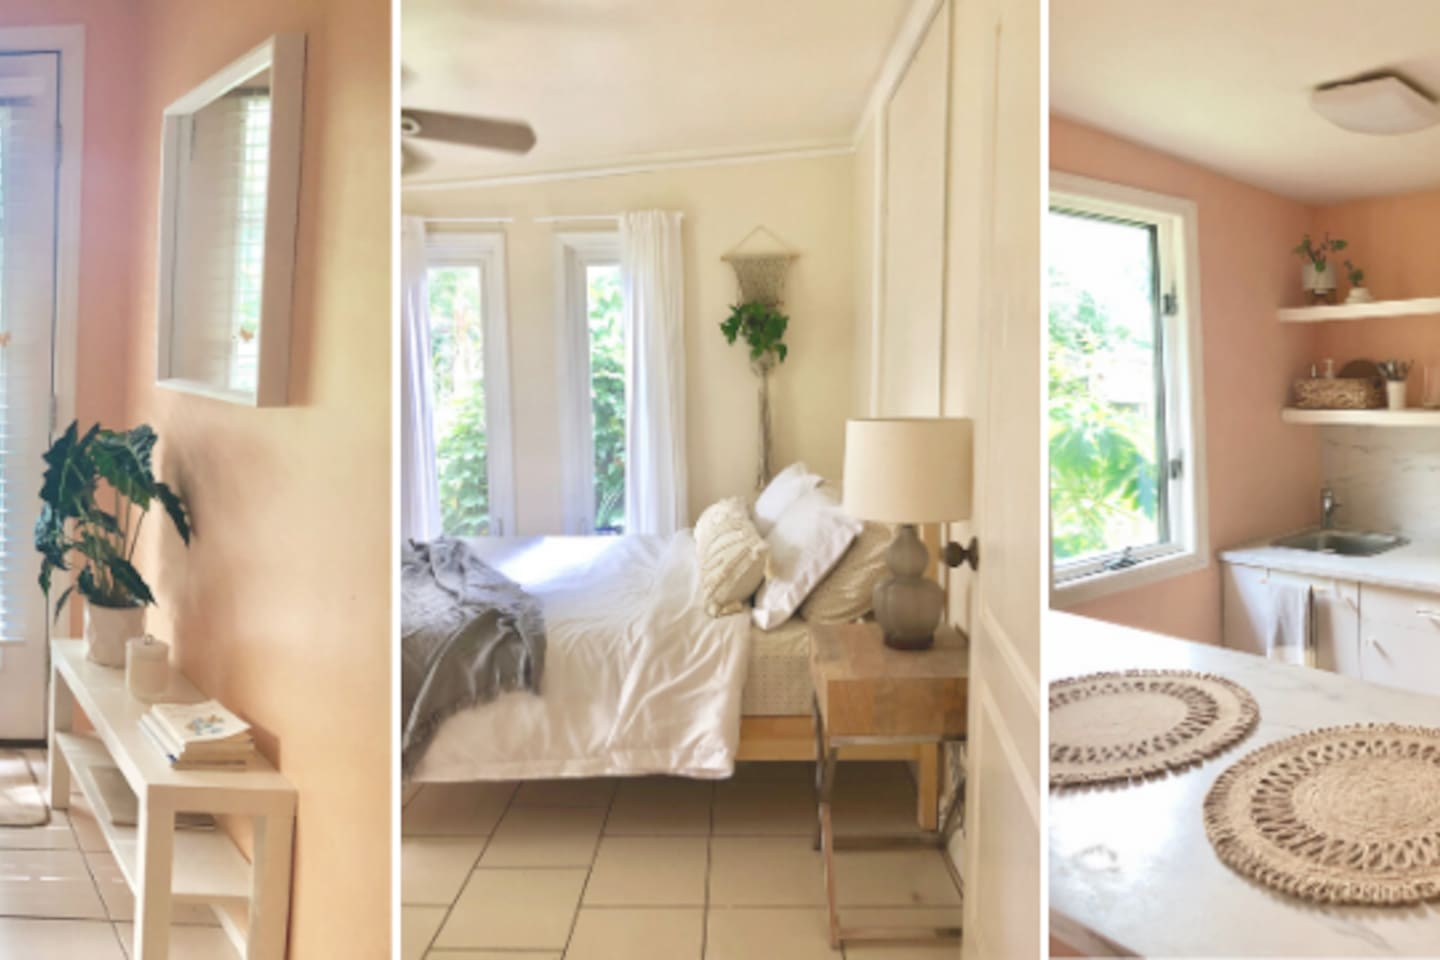 Enjoy your peaceful, relaxing retreat on 2 acres of tropical food forest.